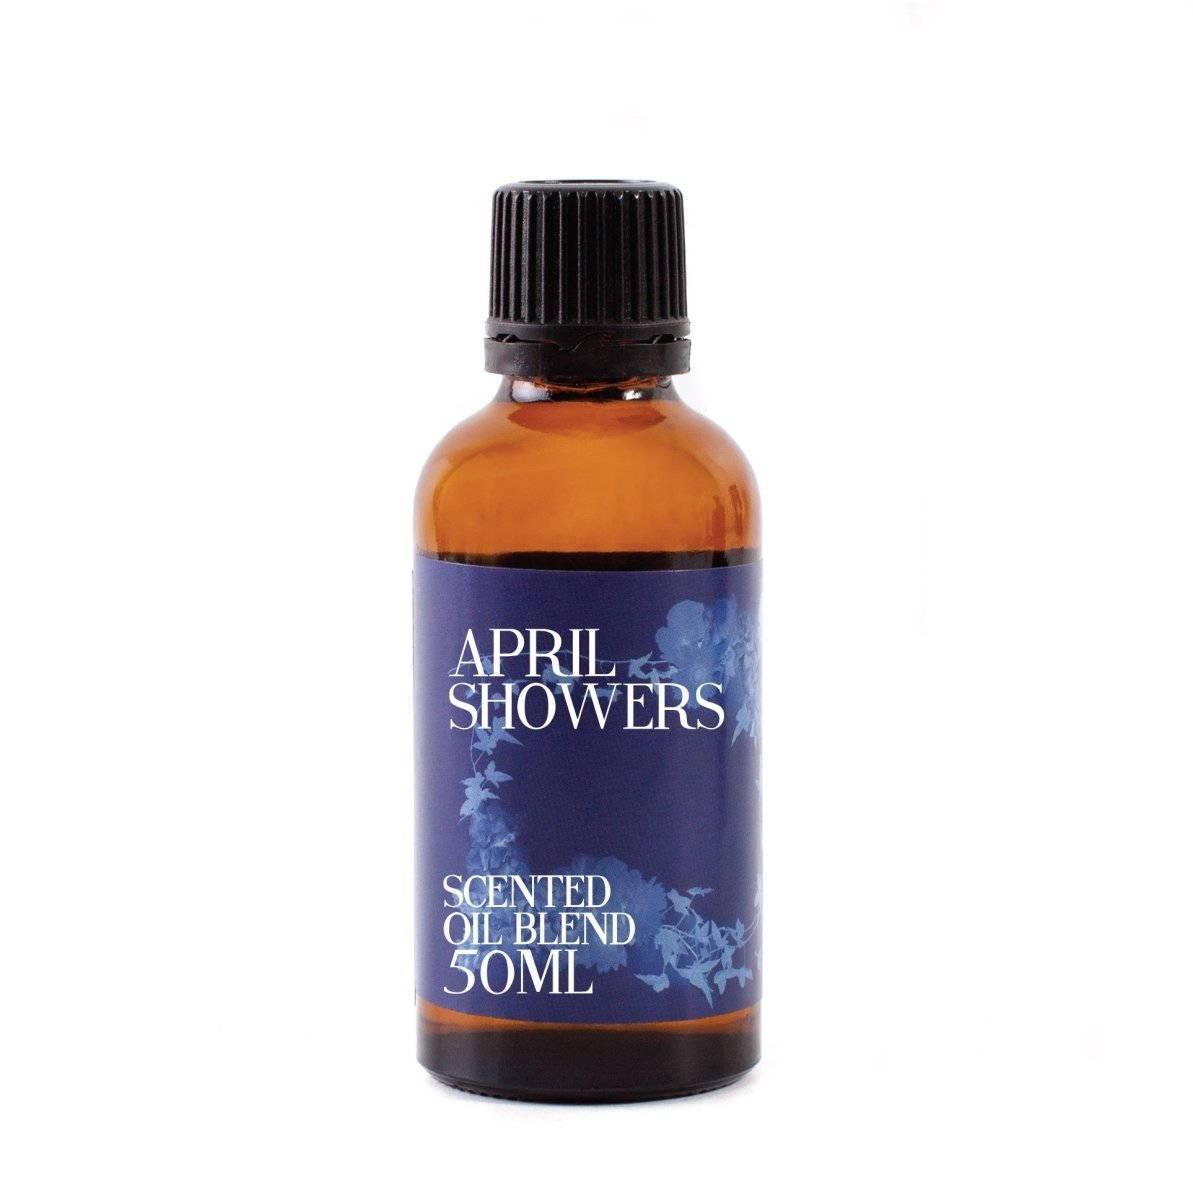 April Showers | Scented Oil Blend - Mystic Moments UK